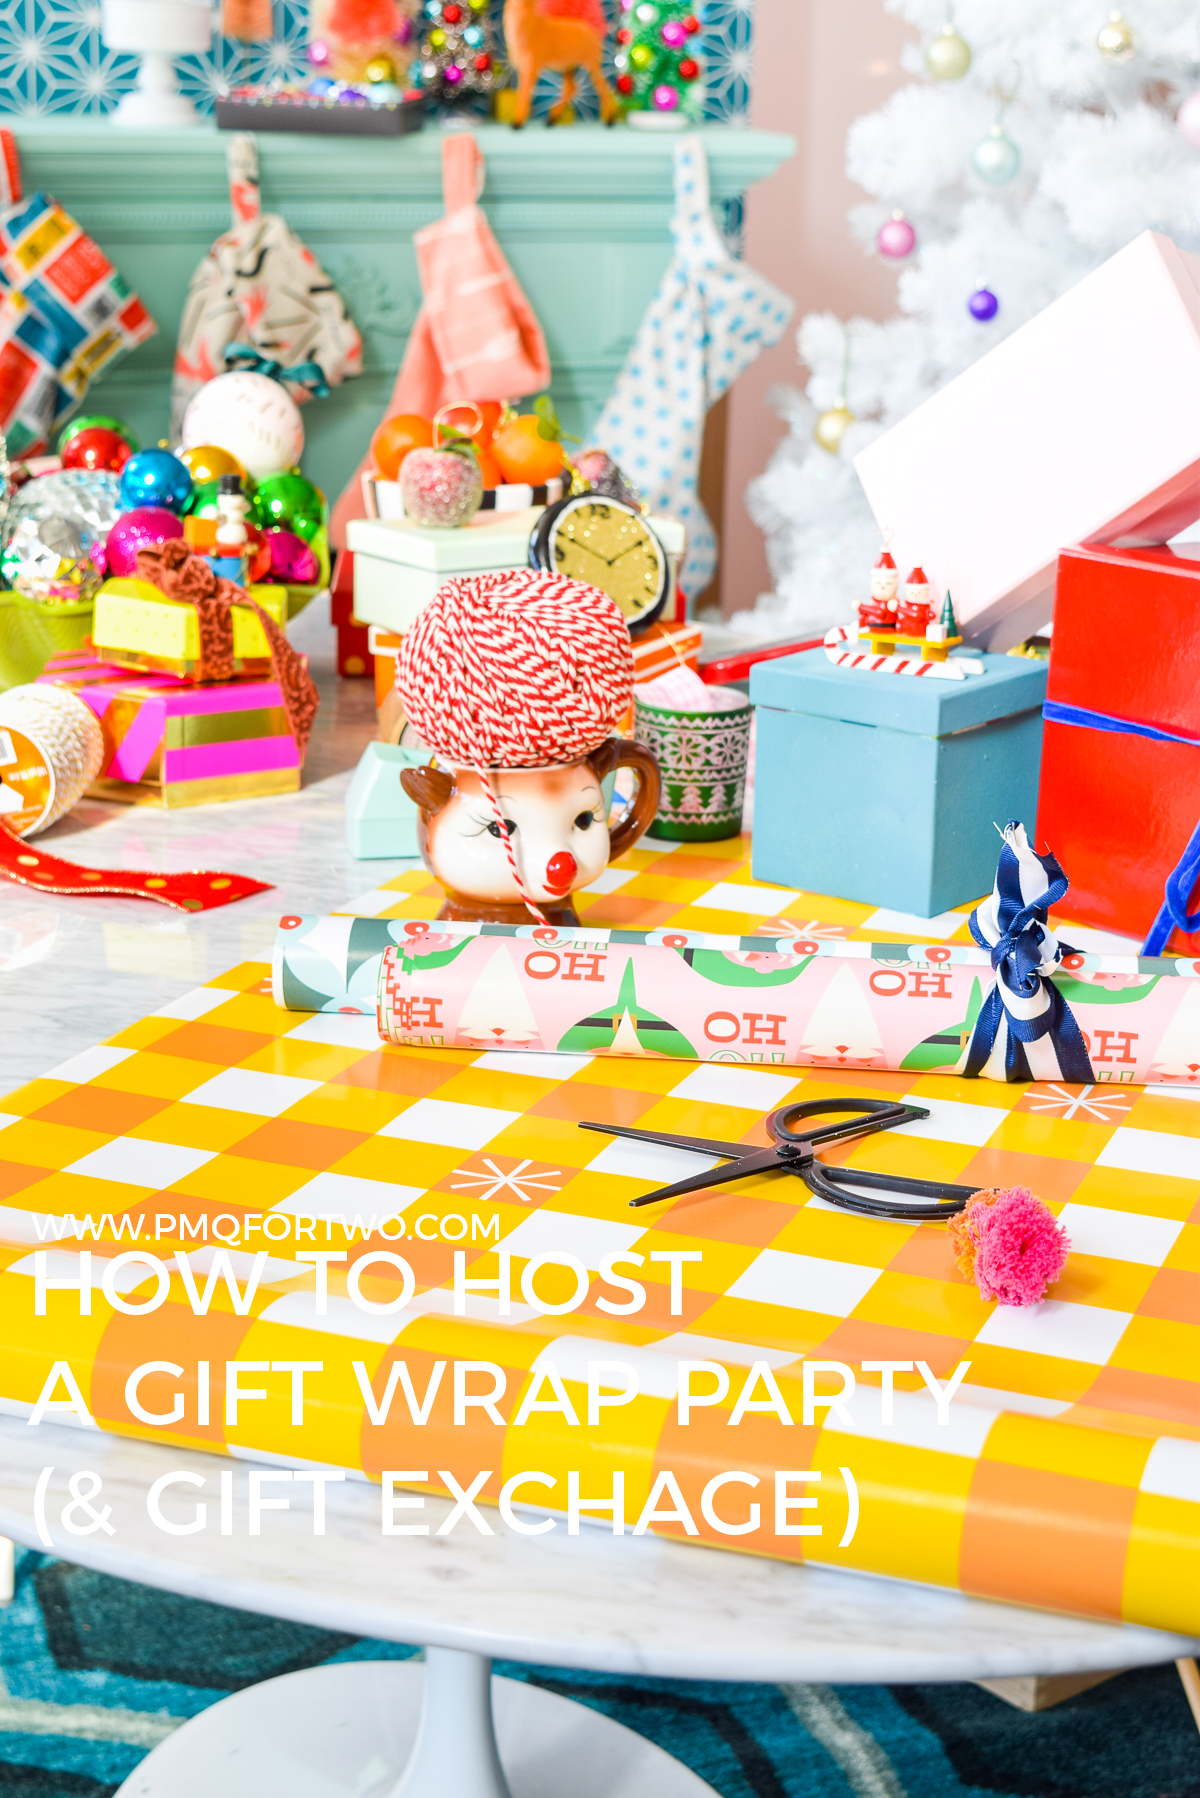 How to Throw a Gift Wrap Party (& Gift Exchange) so that everything looks hella fab under the Christmas tree. Check out my list of must haves, including where I get the best gift wrap!